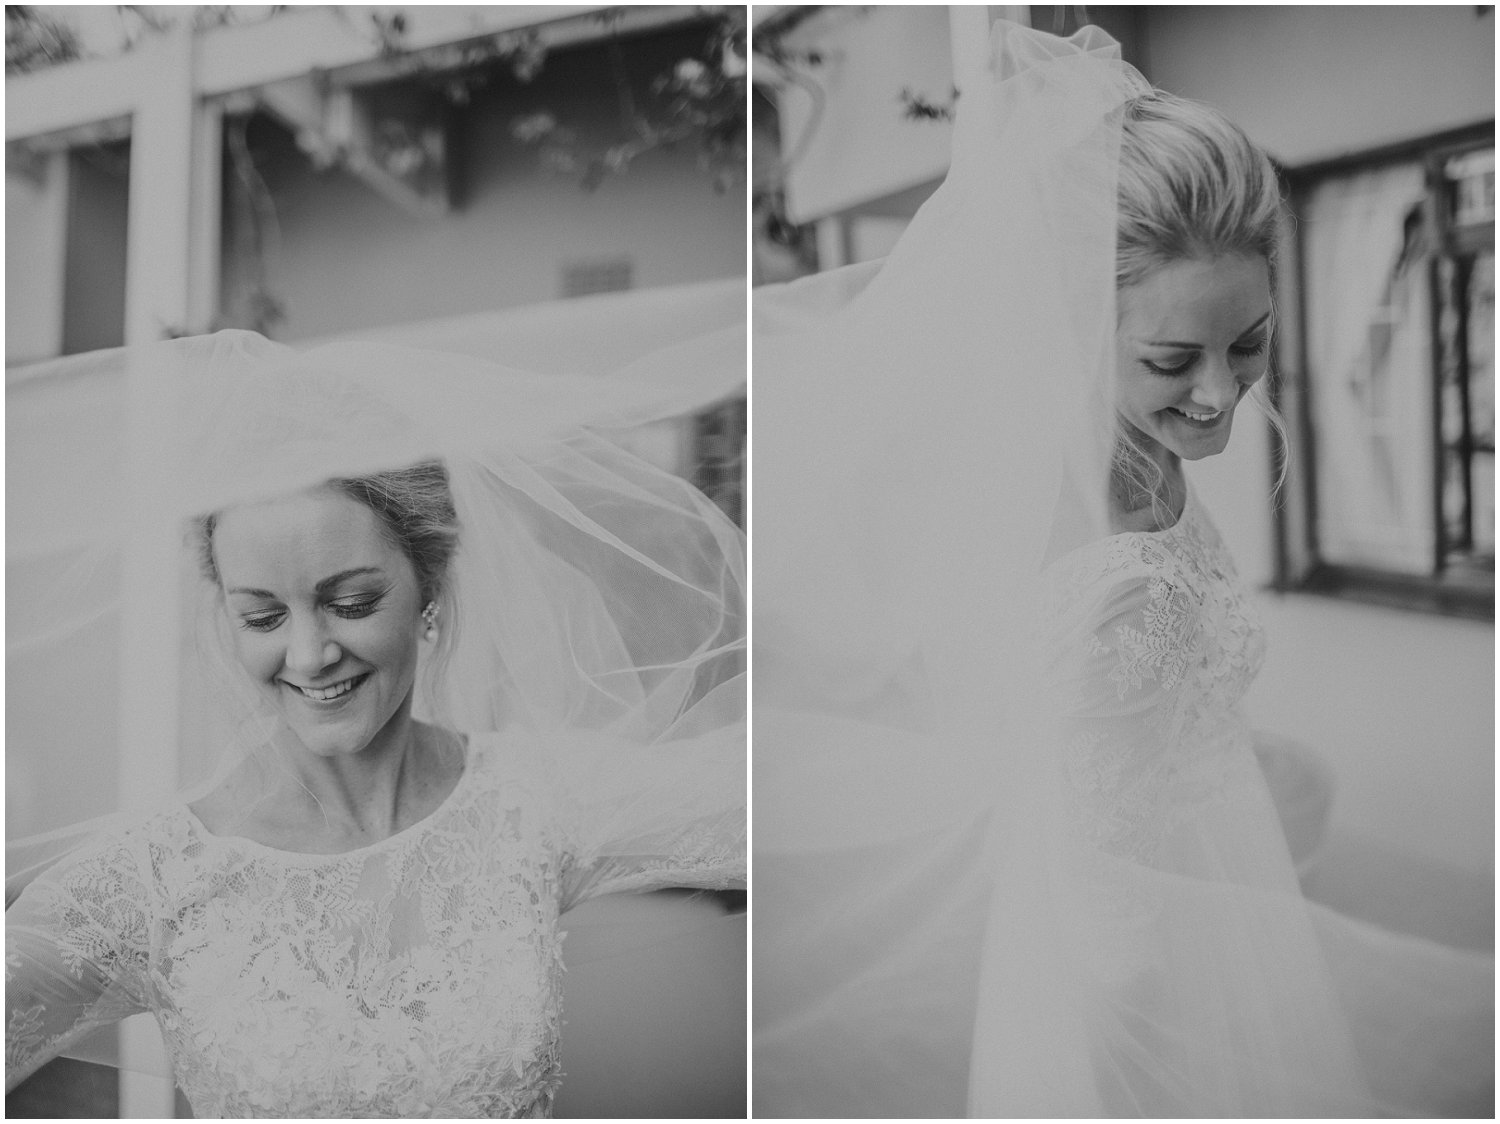 Top Wedding Photographer Cape Town South Africa Artistic Creative Documentary Wedding Photography Rue Kruger_0673.jpg